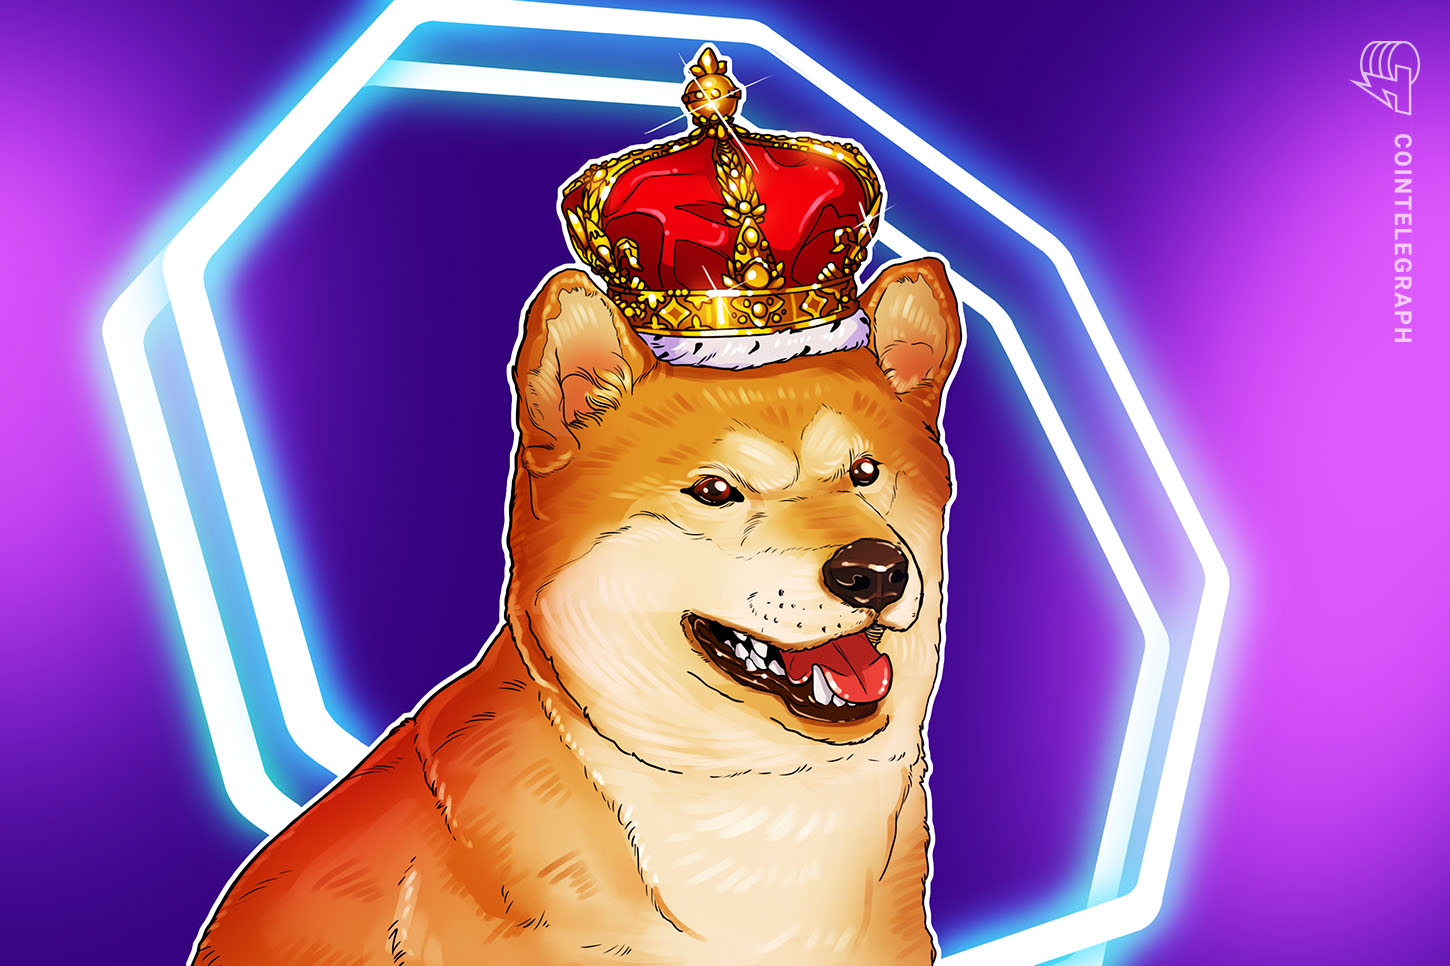 Dogecoin gains 8% after Elon Musk says DOGE payments compete with Bitcoin, Ethereum